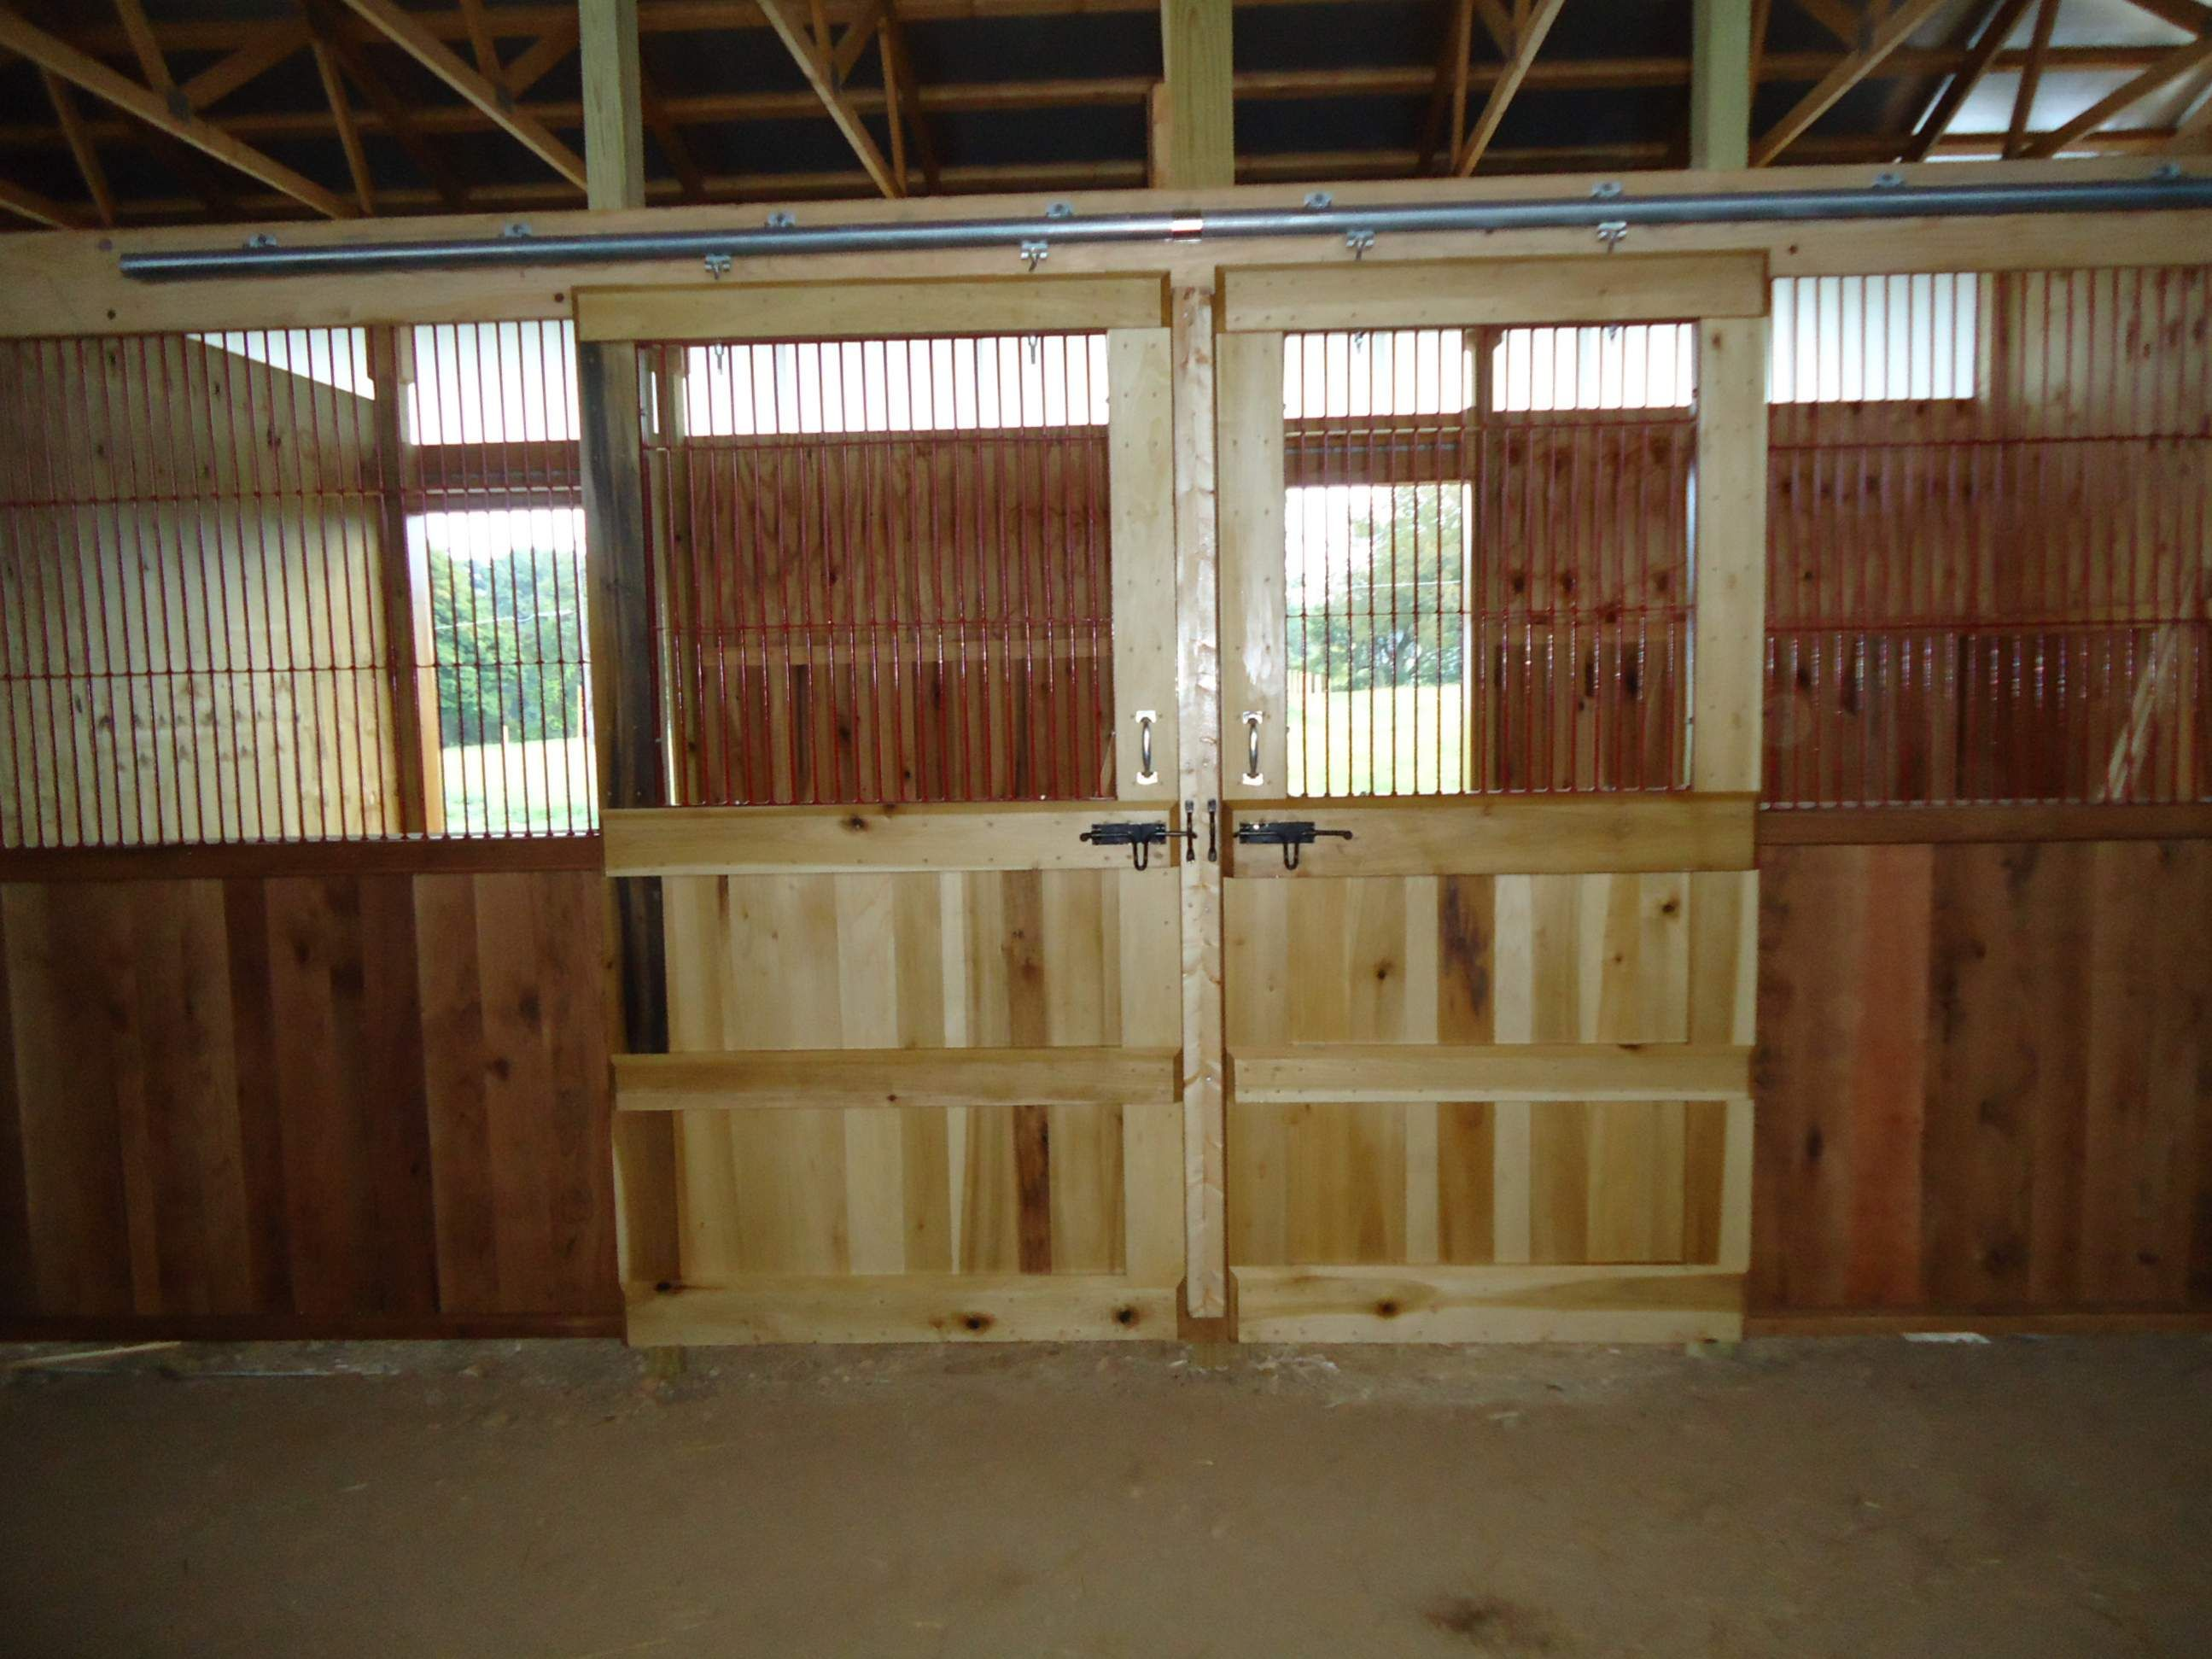 17 best images about barn ideas on pinterest stables shelters and barn kits - Horse Barn Design Ideas